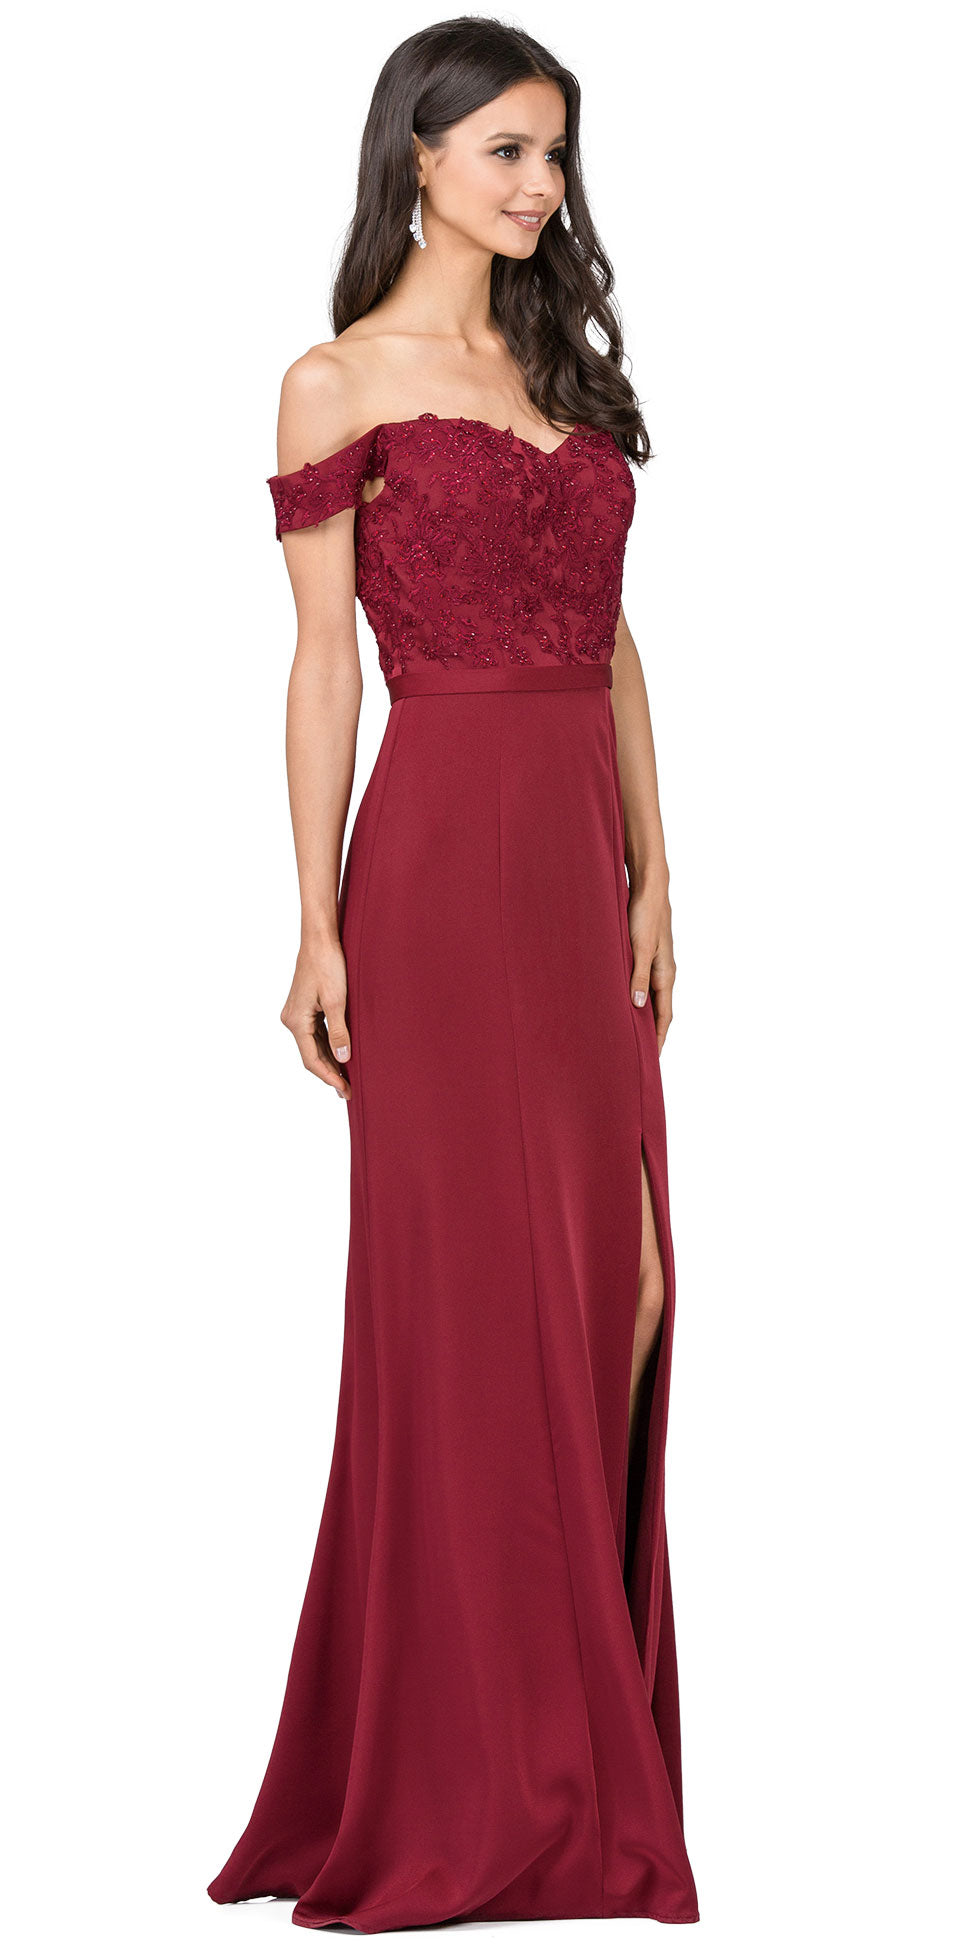 Main image of Off-the-shoulder Lace Accent Top Long Prom Dress